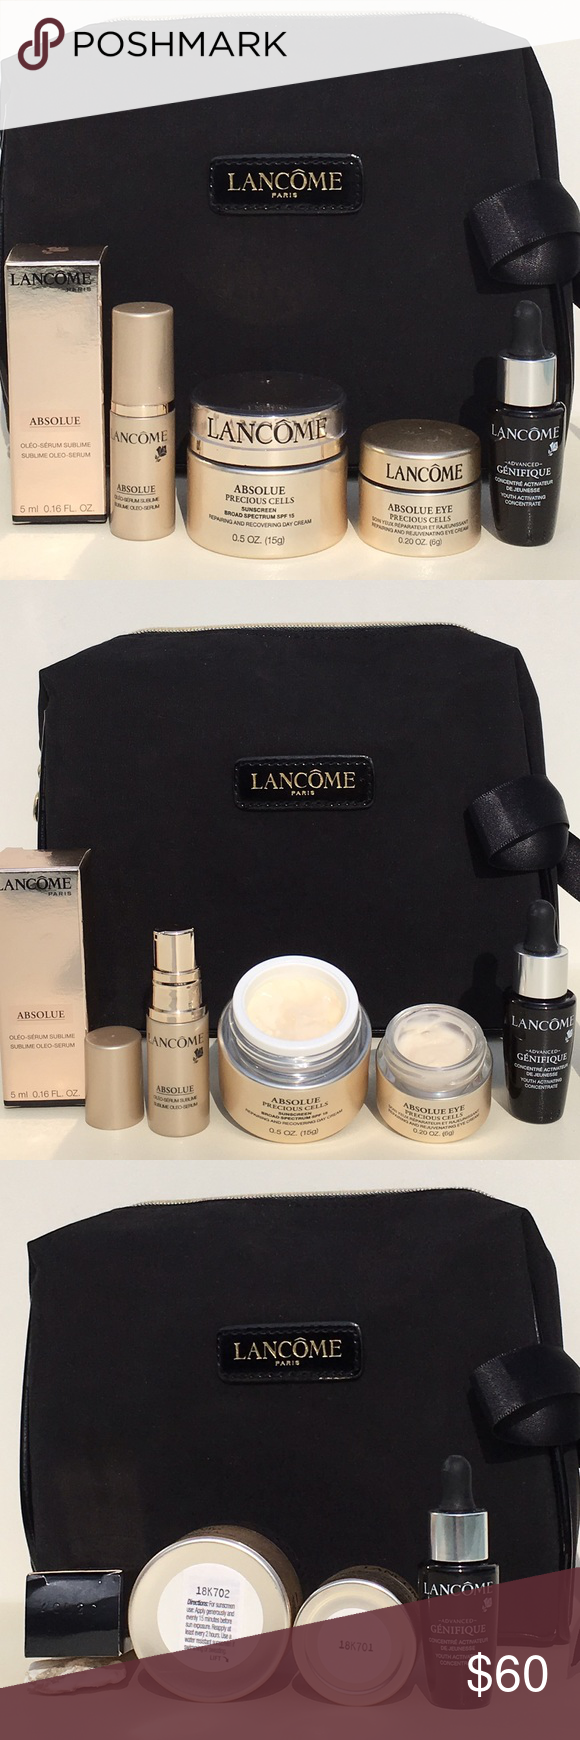 NWT! Lancôme ABSOLUE GOLD PRECIOUS CELL Gift Set. NWT! Lancôme ABSOLUE GOLD PRECIOUS CELL Gift Set. Set Includes Absolue Sublime Oleo-Serum 0.16oz., Absolue Precious CELL Repairing & Recovering Day Cream 0.5oz., Absolue Precious Cell Eye Cream 0.20oz., Genifique Advanced Youth Activating Serum 0.27oz. PLUS, Lancôme GORGEOUS Black & Gold Suede w/Satin Side Bow Cosmetic Bag, FREE GIFT BOX INCLUDED! Lancome Makeup